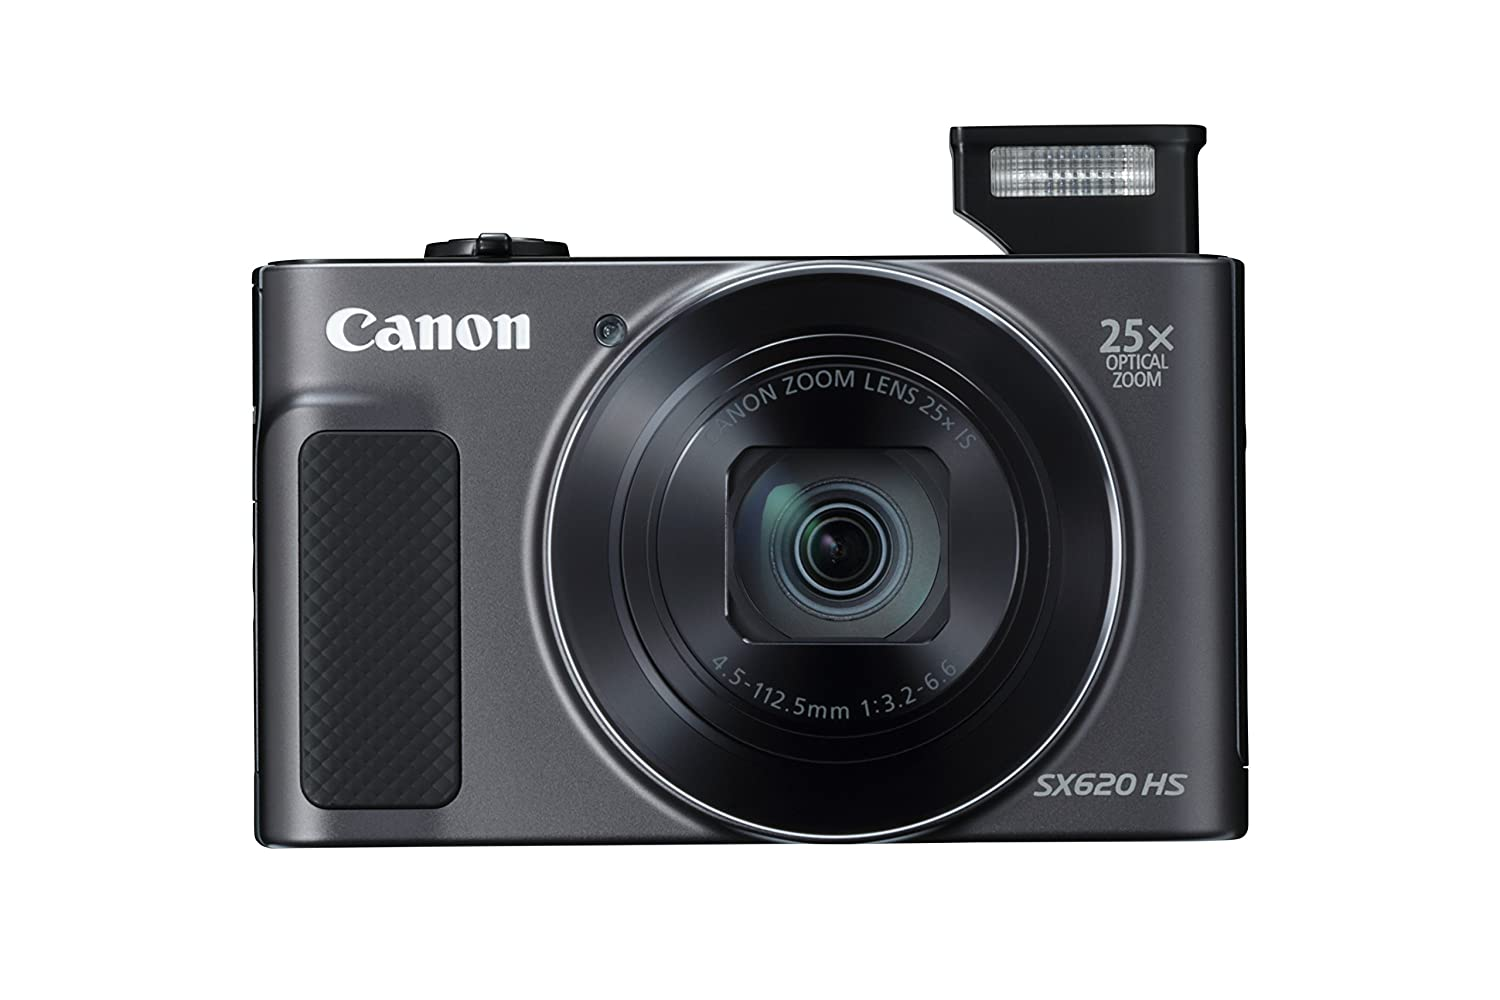 Buy Canon PowerShot SX620HS 20.2MP Digital Camera with 25x Optical Zoom  (Black) + 16GB Memory Card + Camera Case Online at Low Price in India |  Canon Camera ...